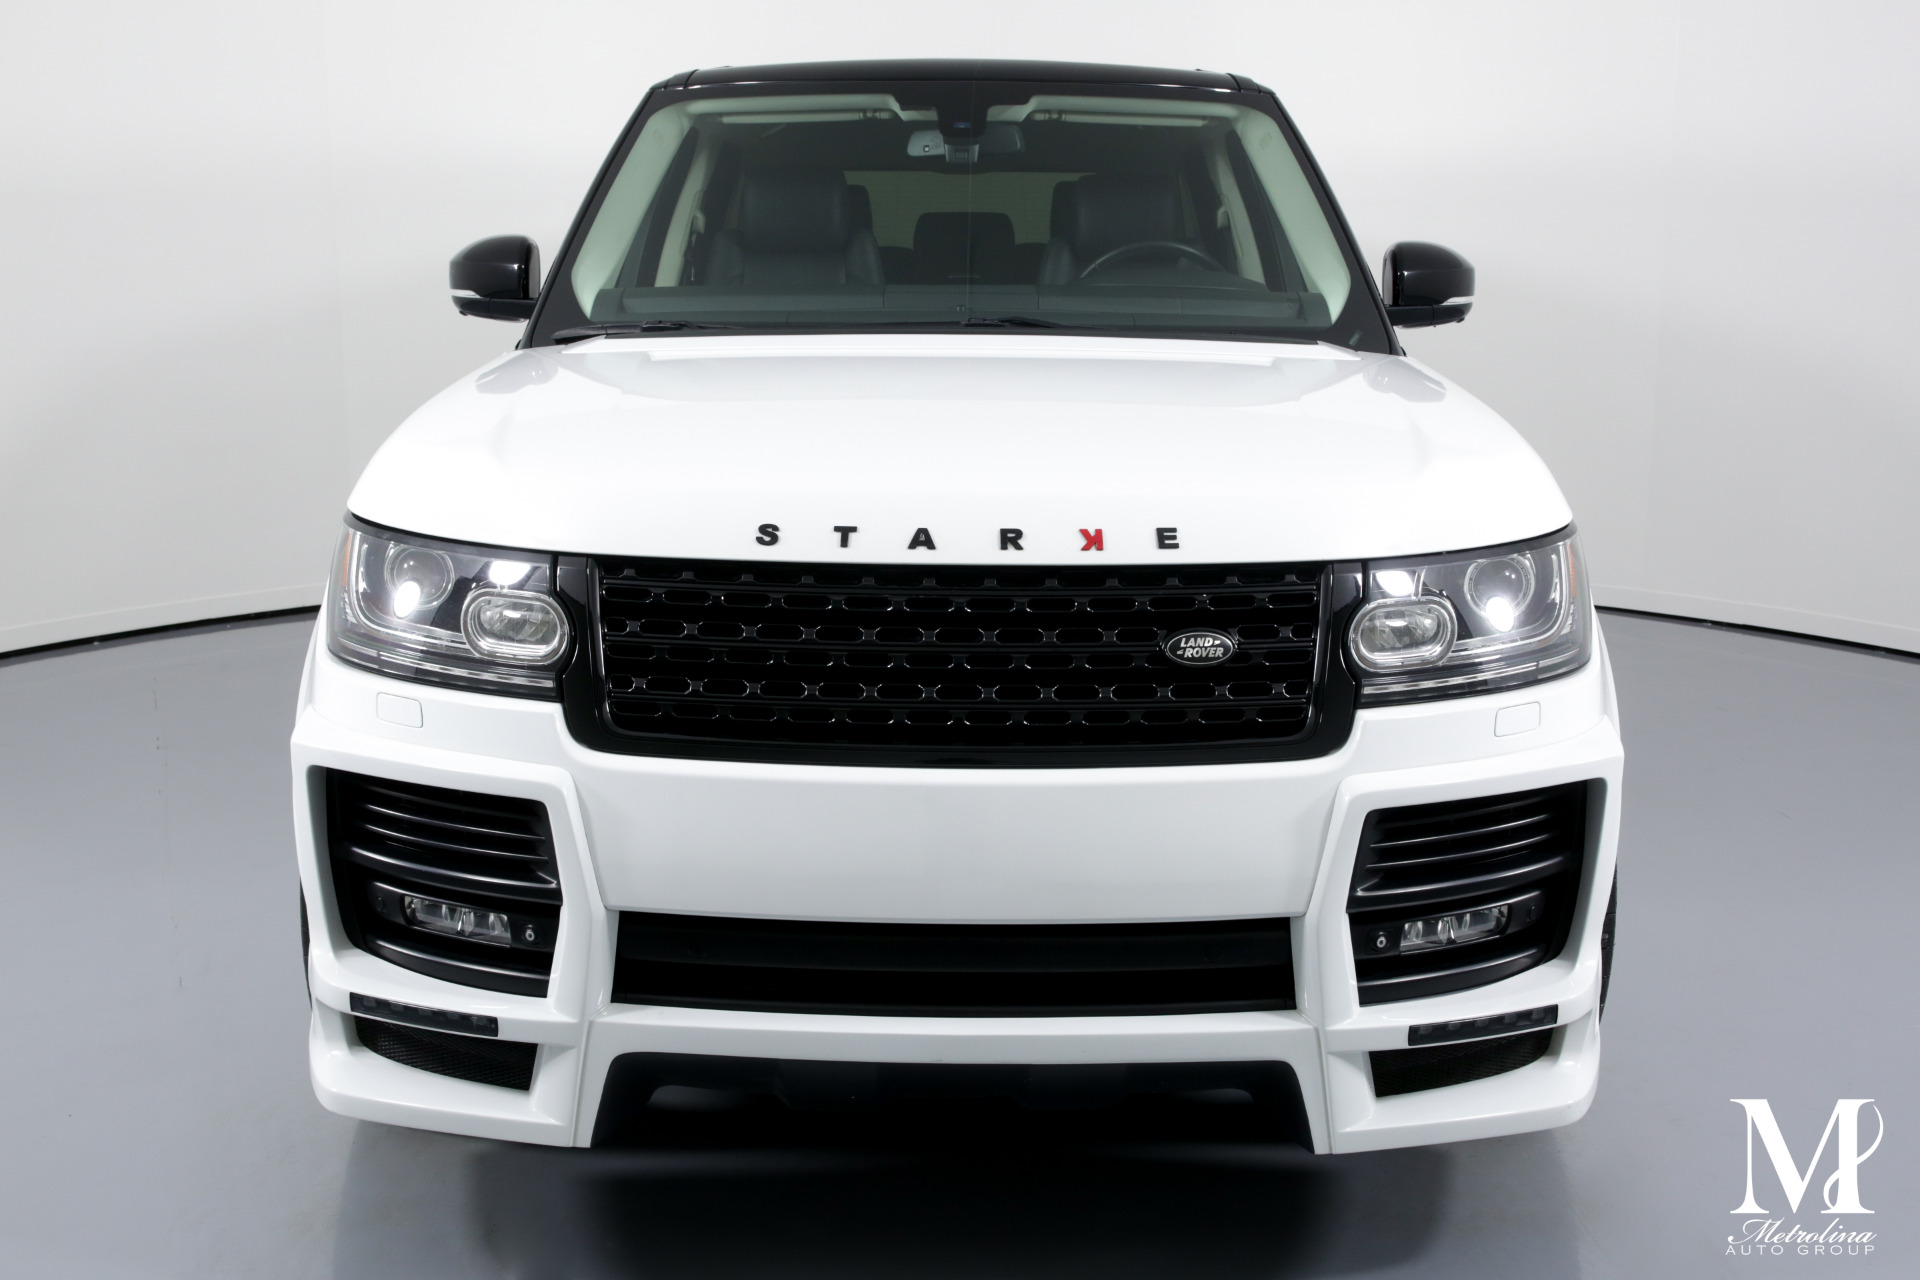 Used 2013 Land Rover Range Rover HSE for sale $69,996 at Metrolina Auto Group in Charlotte NC 28217 - 3